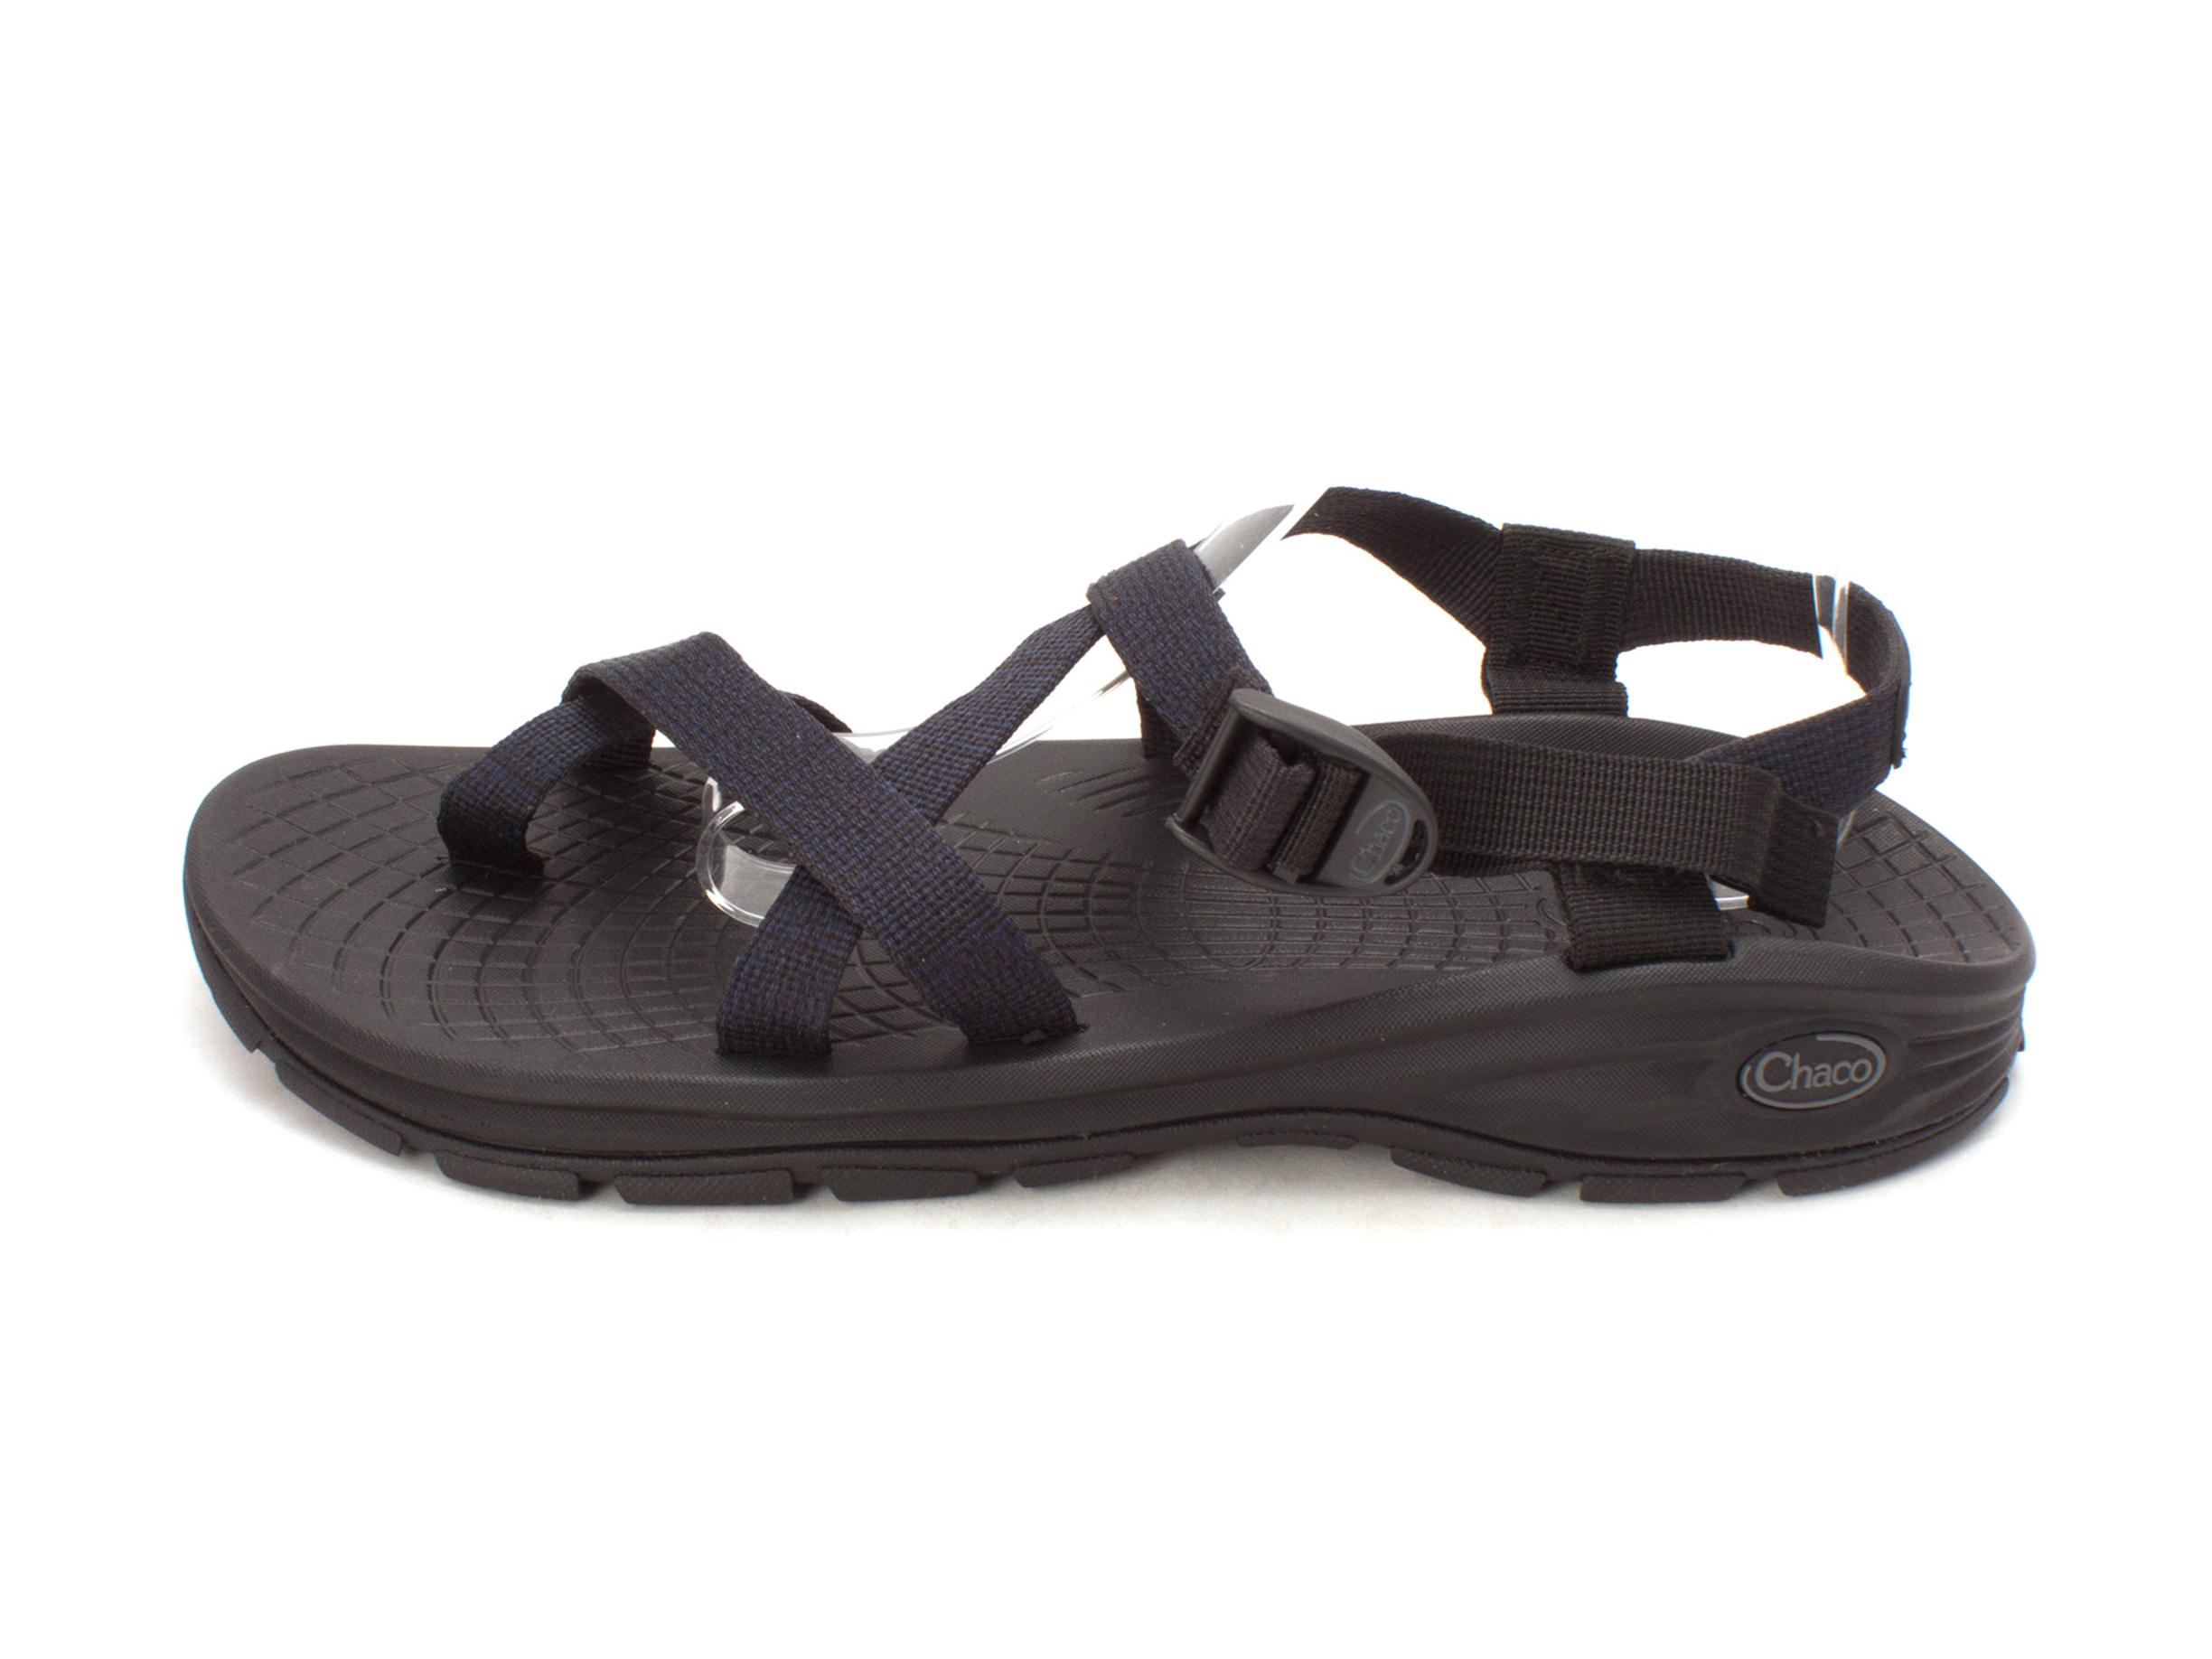 Chaco Mens Zvolv 2 Buckle Open Toe Sport Sandals by Chaco